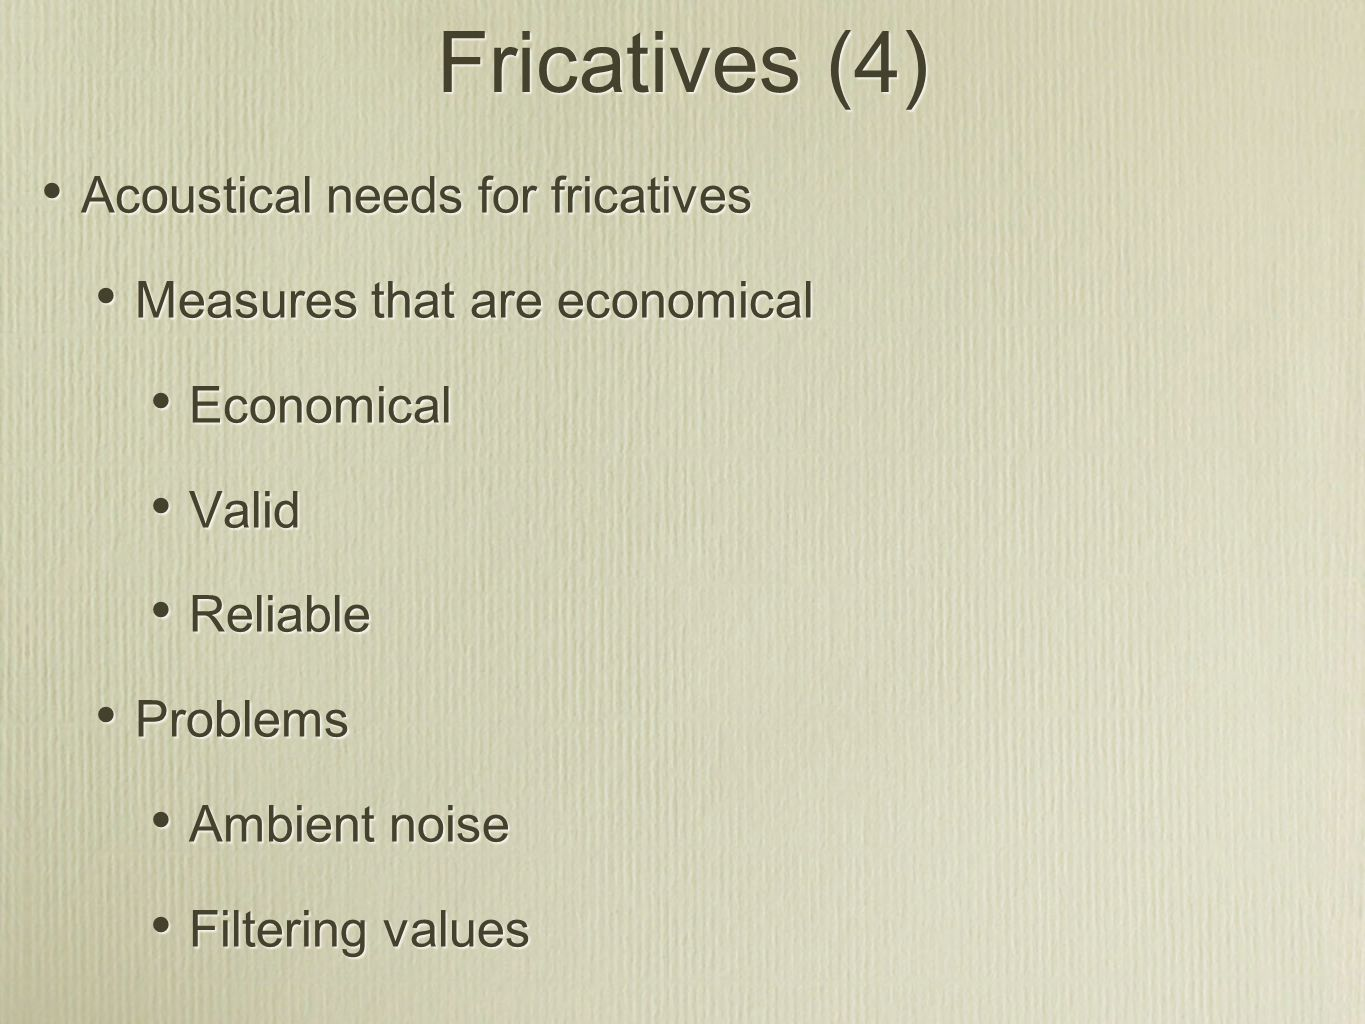 Fricatives (4) Acoustical needs for fricatives Measures that are economical Economical Valid Reliable Problems Ambient noise Filtering values Acoustic